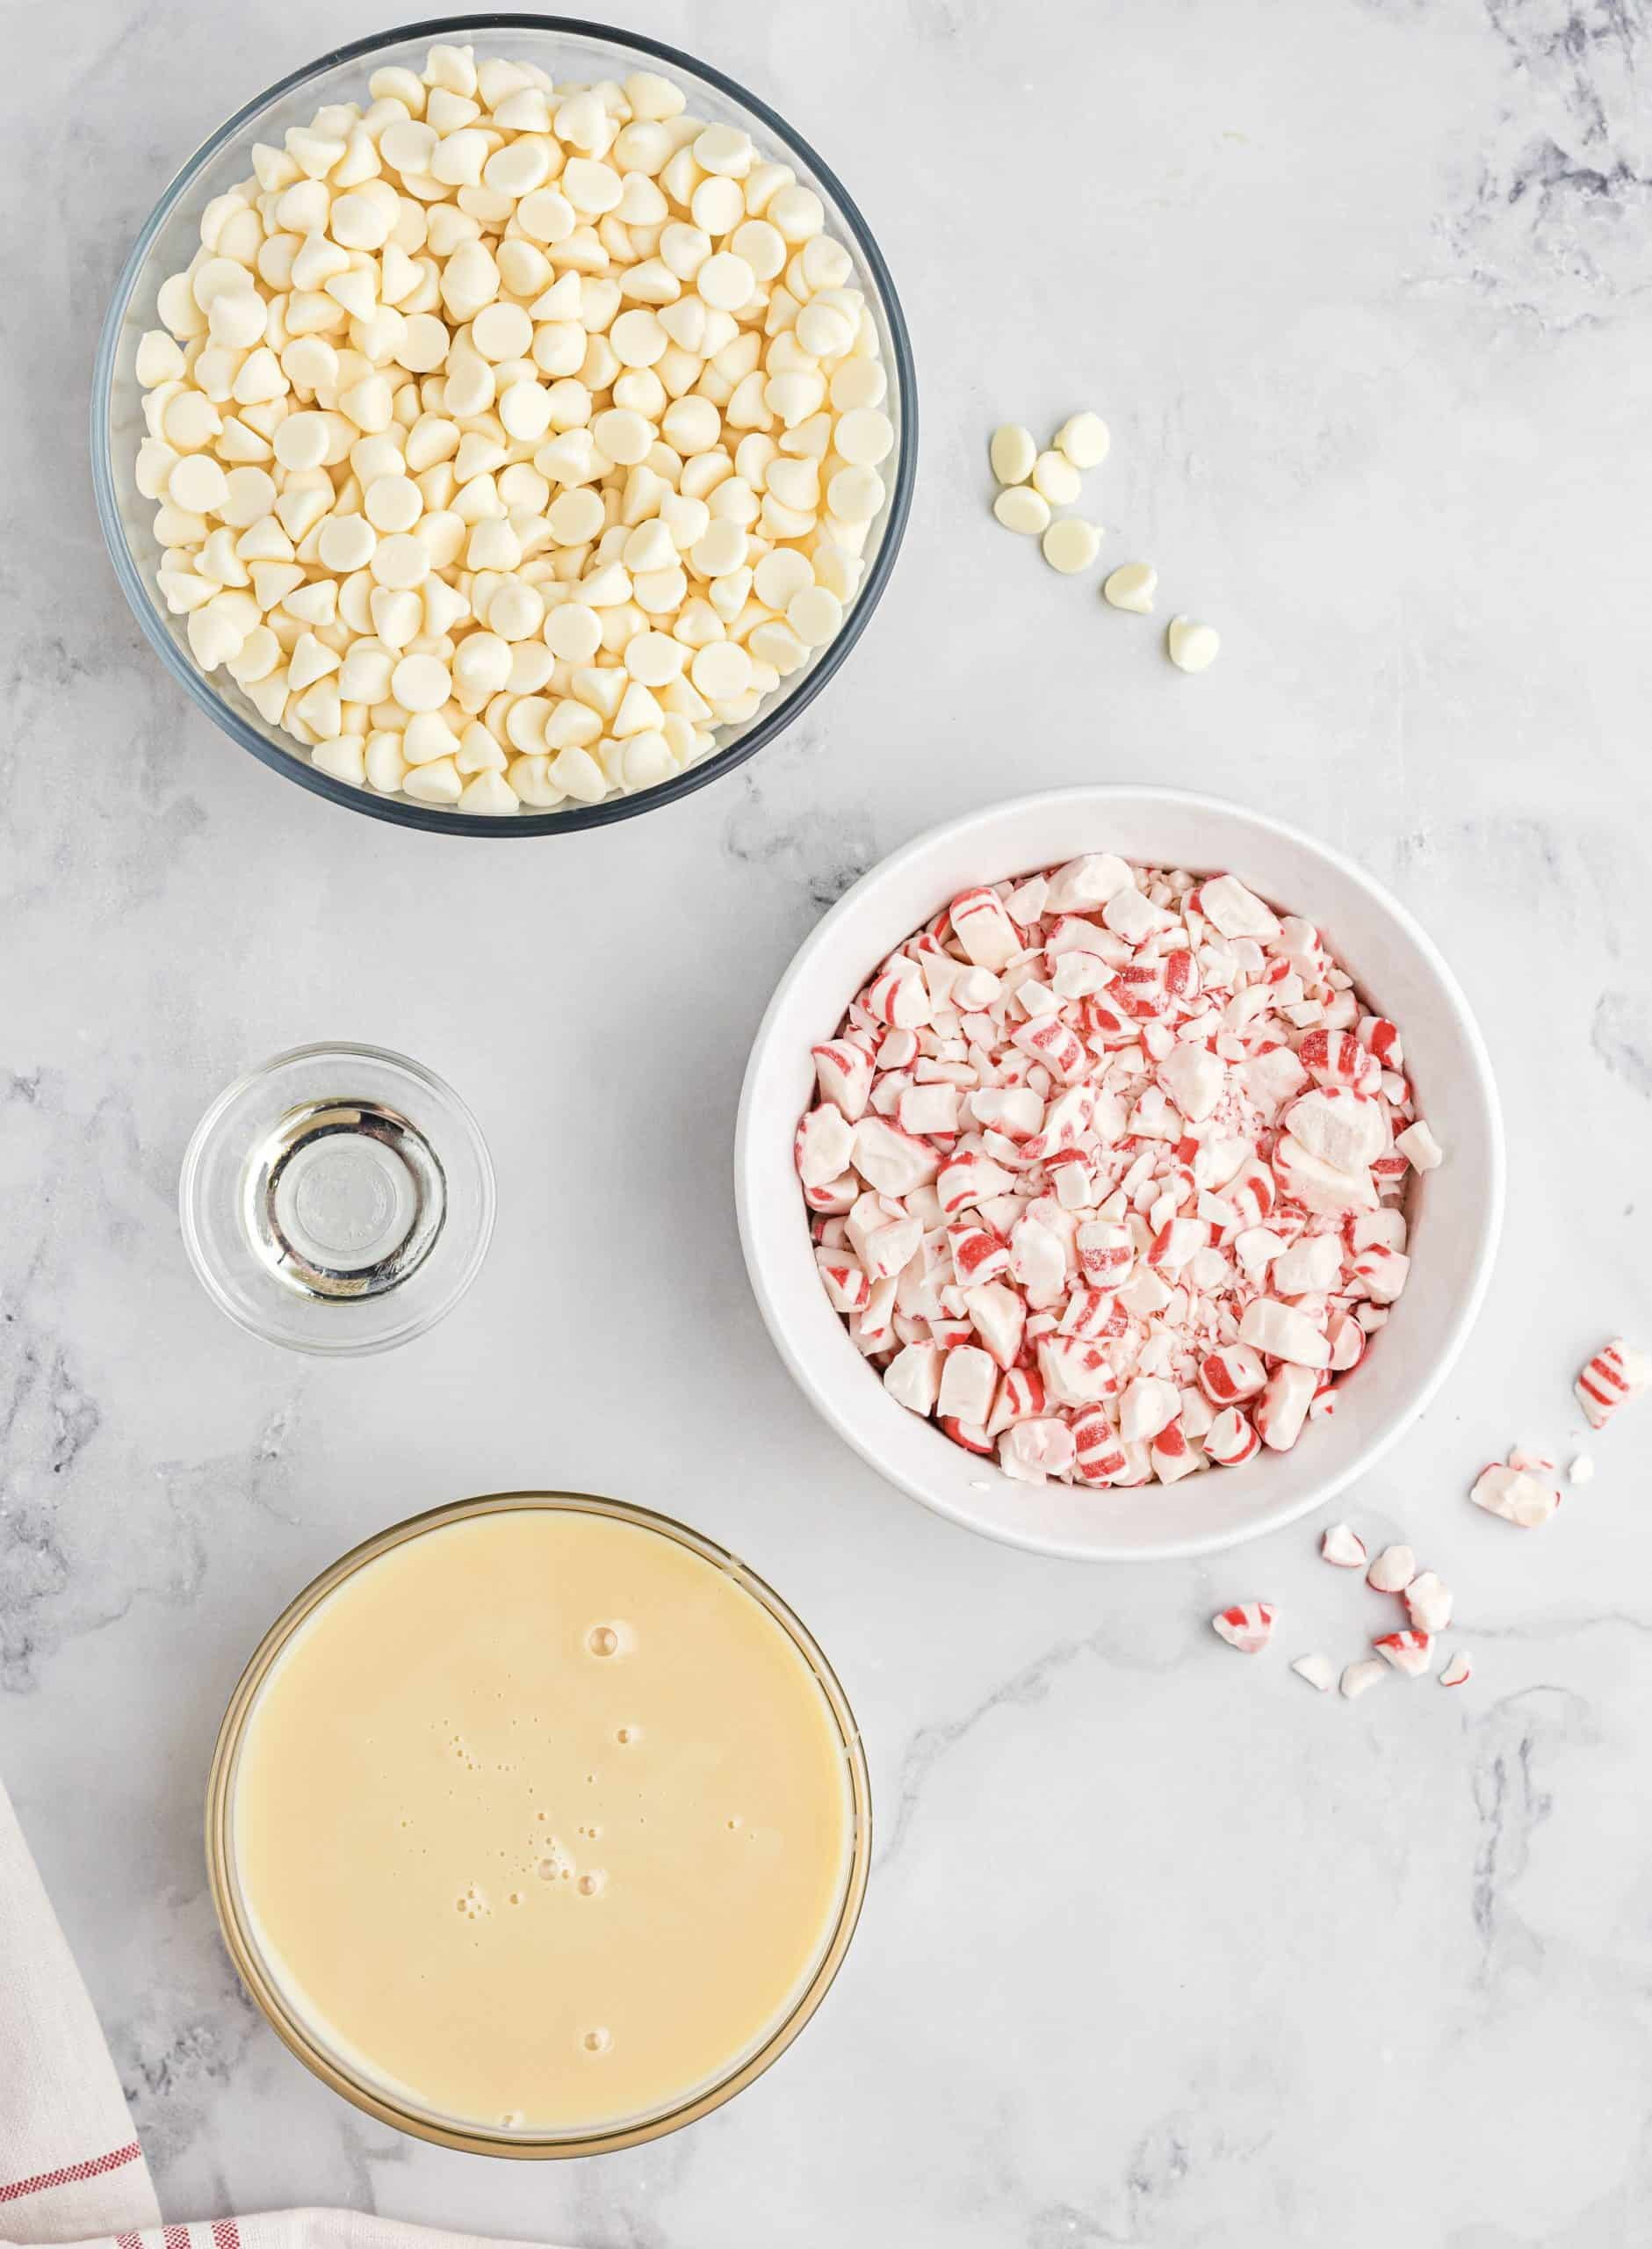 3 cups of white chocolate chips (about 1 lb of white chocolate) 1 (14 oz) cansweetened condensed milk 1 teaspoon peppermint extract 2 cups crushed candy canes or peppermint candies.